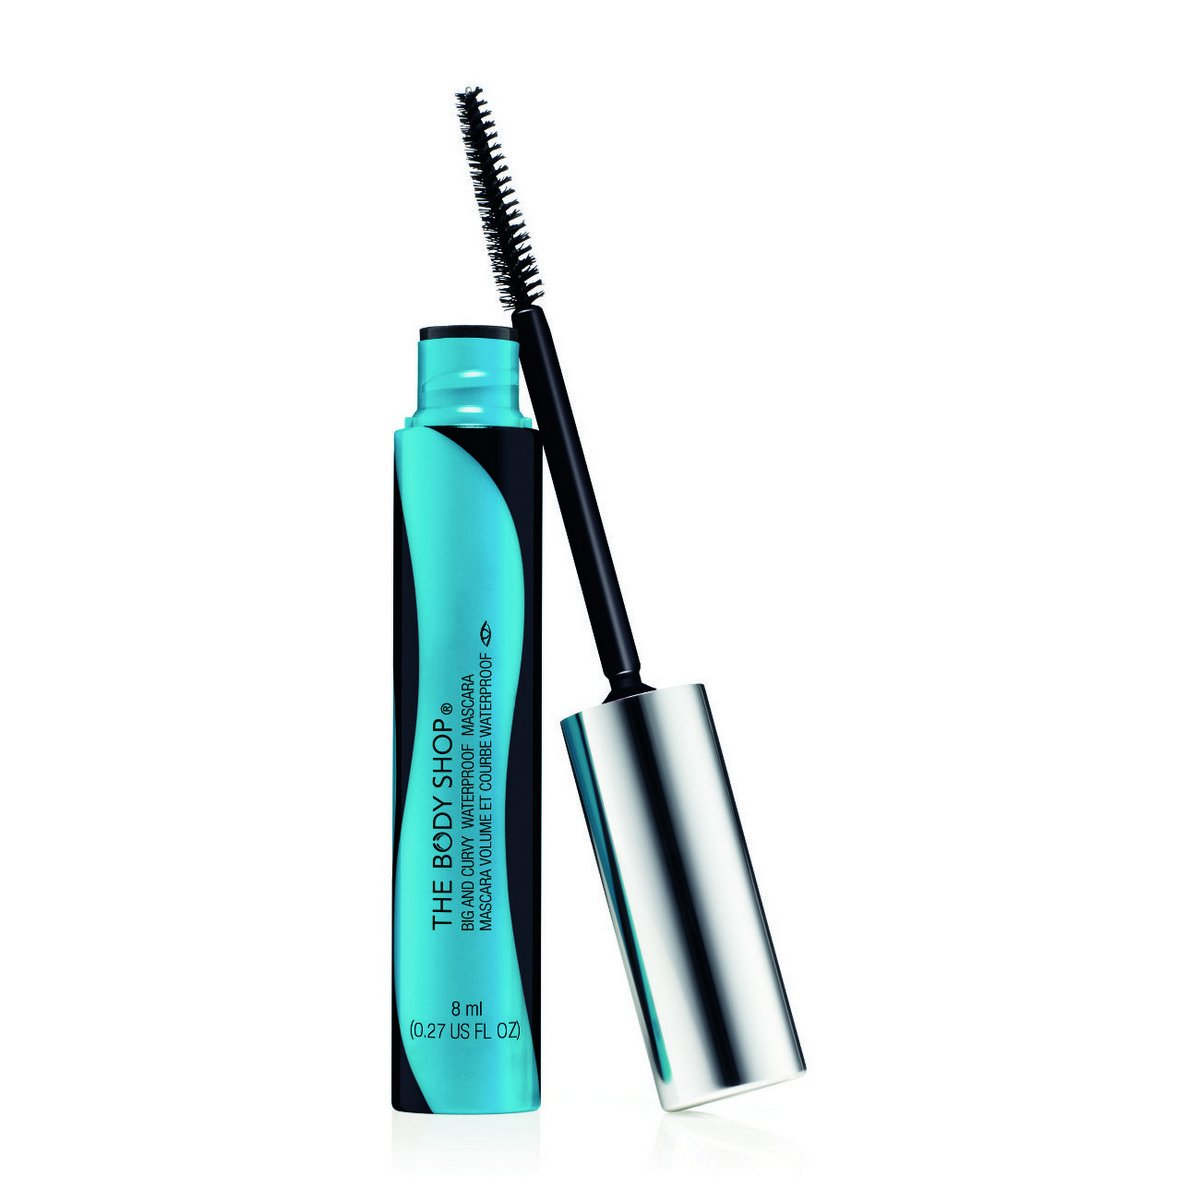 Amazon.com: The Body Shop Big and Curvy Waterproof Mascara, 0.33 Fl Oz - Black: Beauty